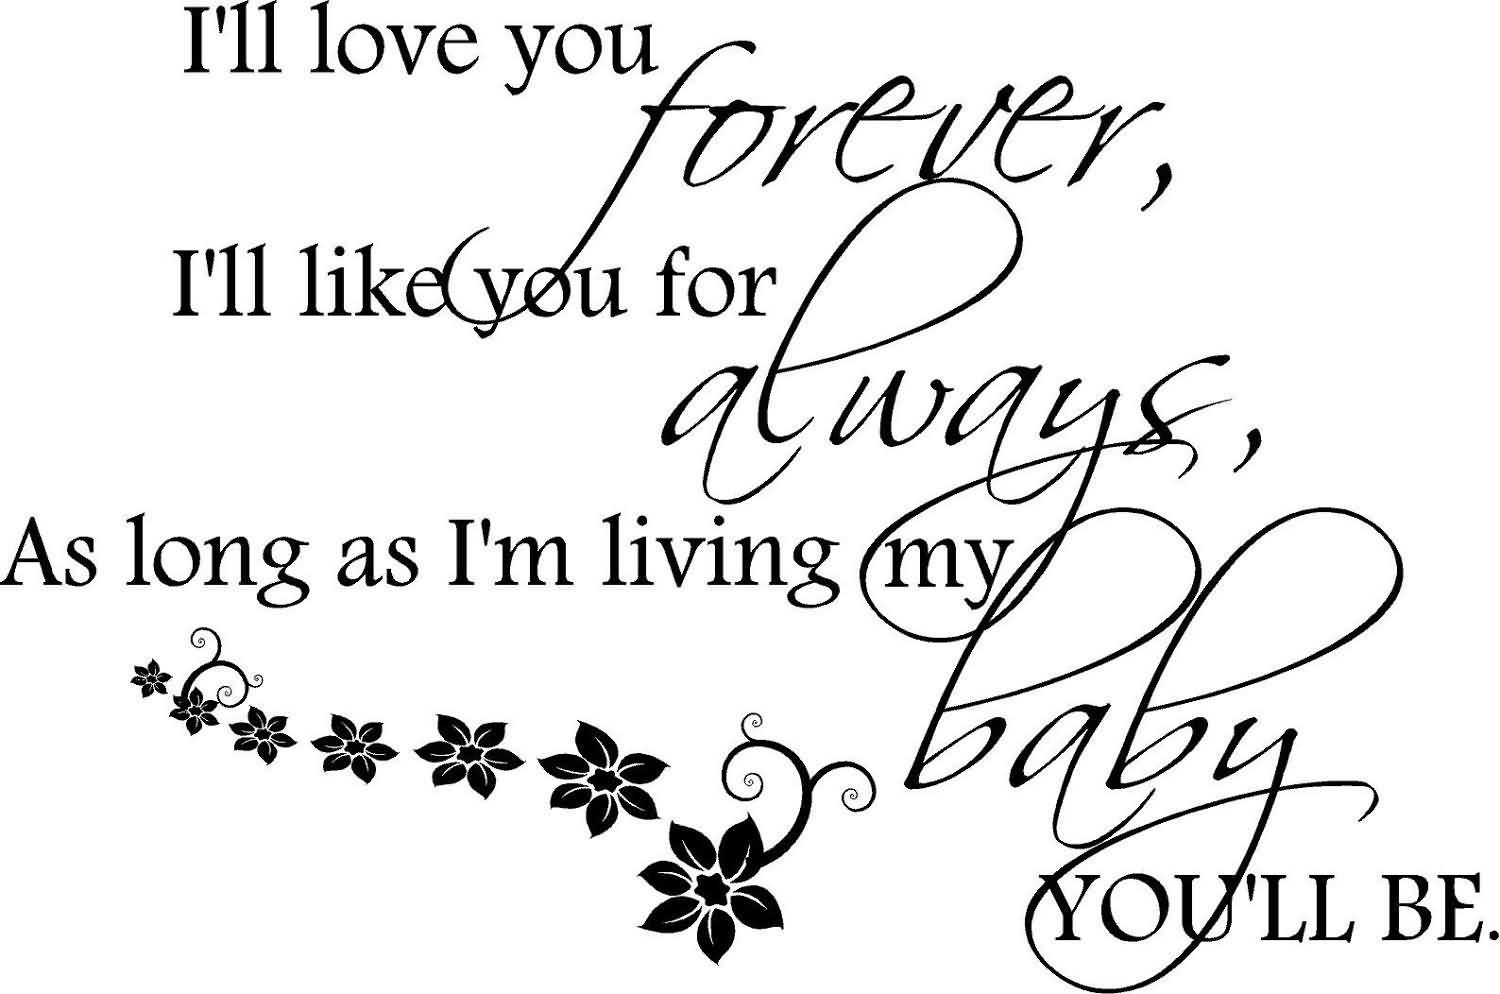 I Ll Love You Forever Quote 20 I Ll Love You Forever Book Quotes & Images  Quotesbae